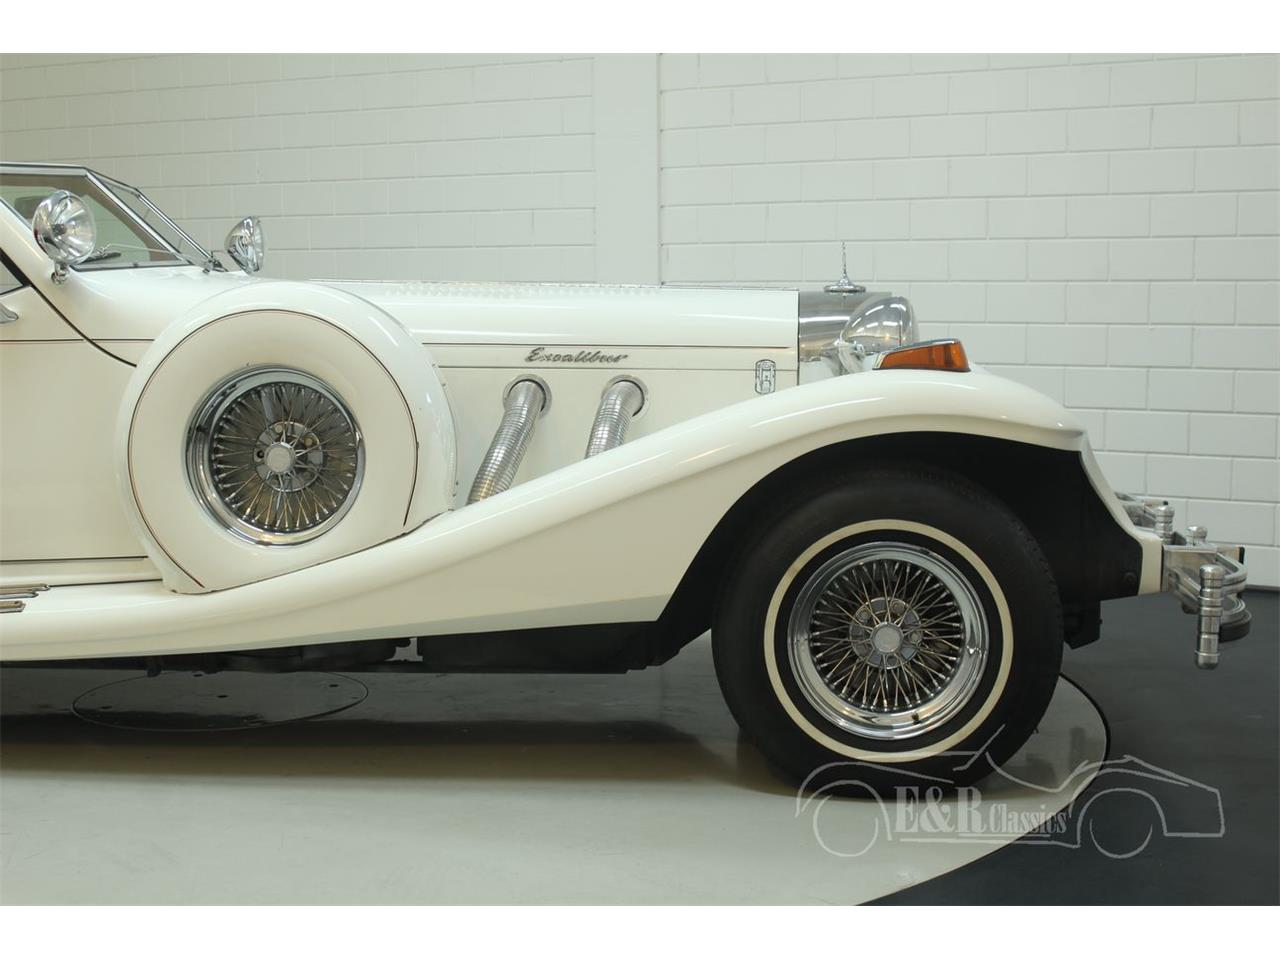 Large Picture of '82 Excalibur Series IV Phaeton located in Waalwijk noord brabant - $78,450.00 - Q3GF